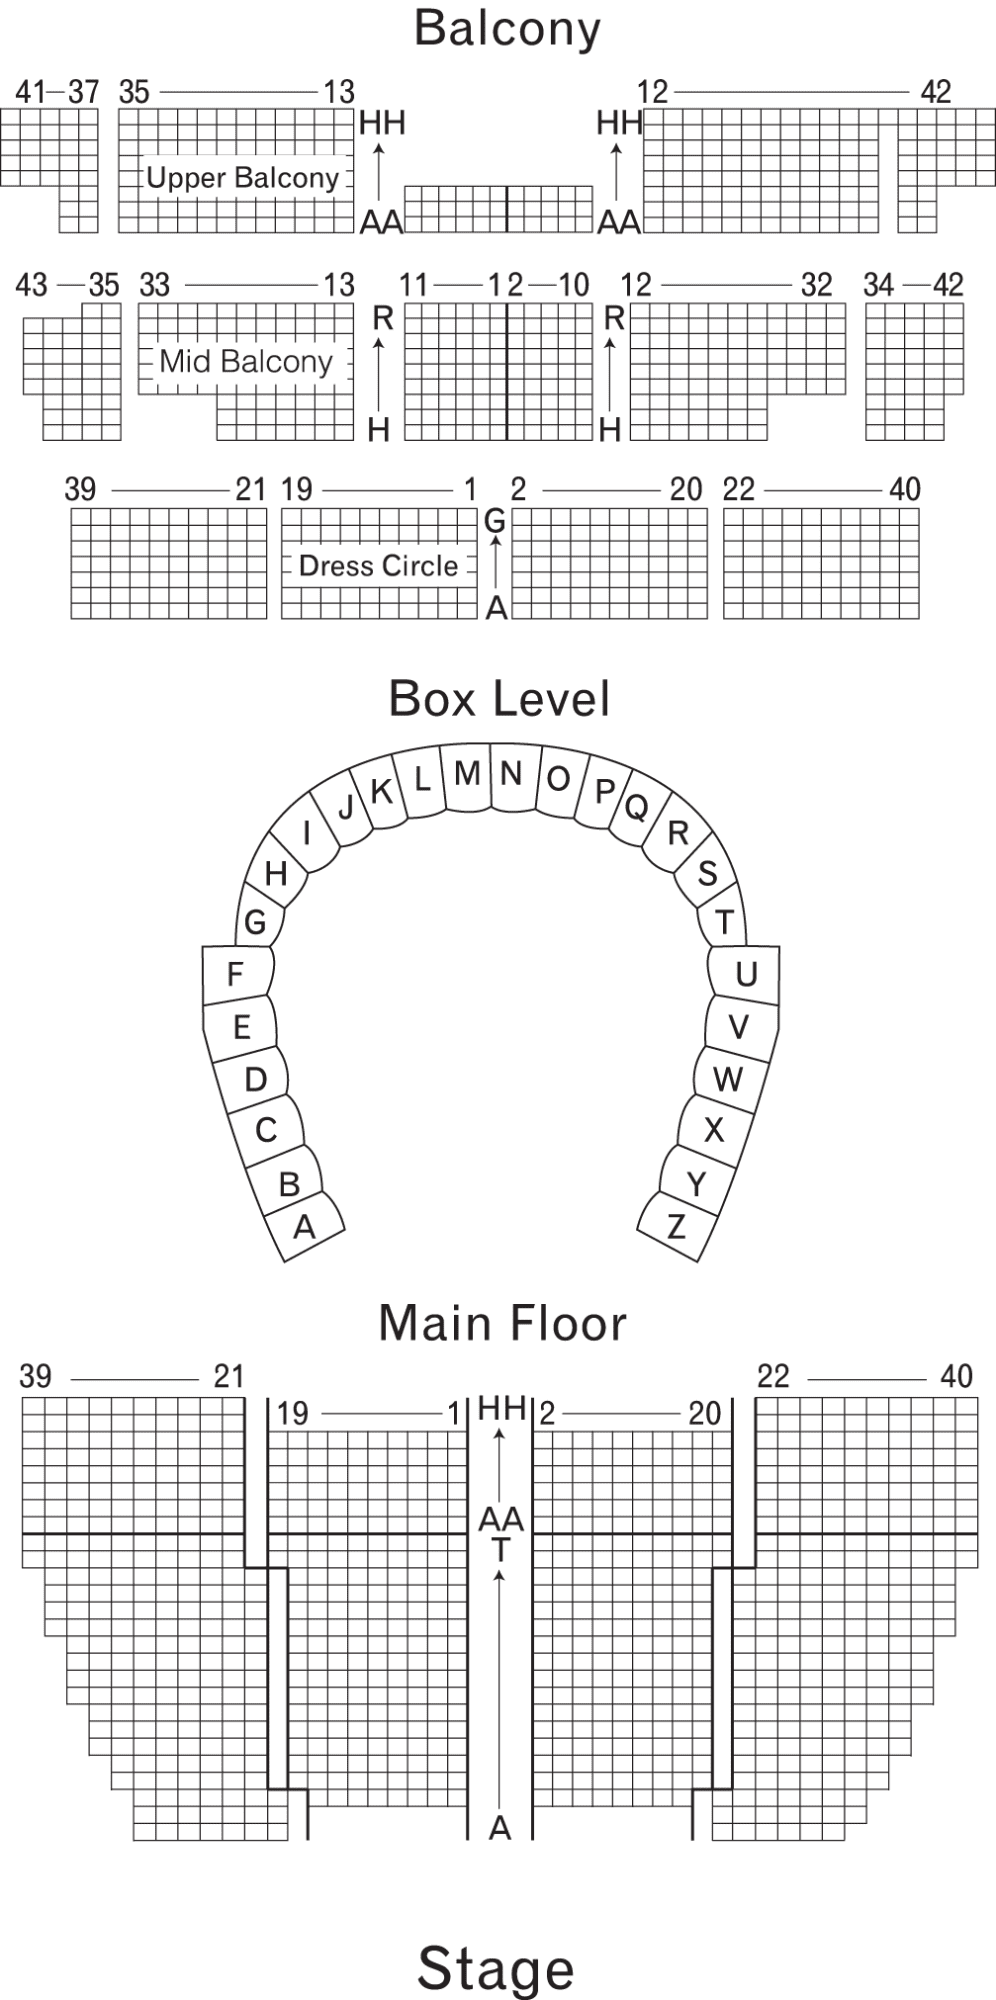 orchestra hall seat map